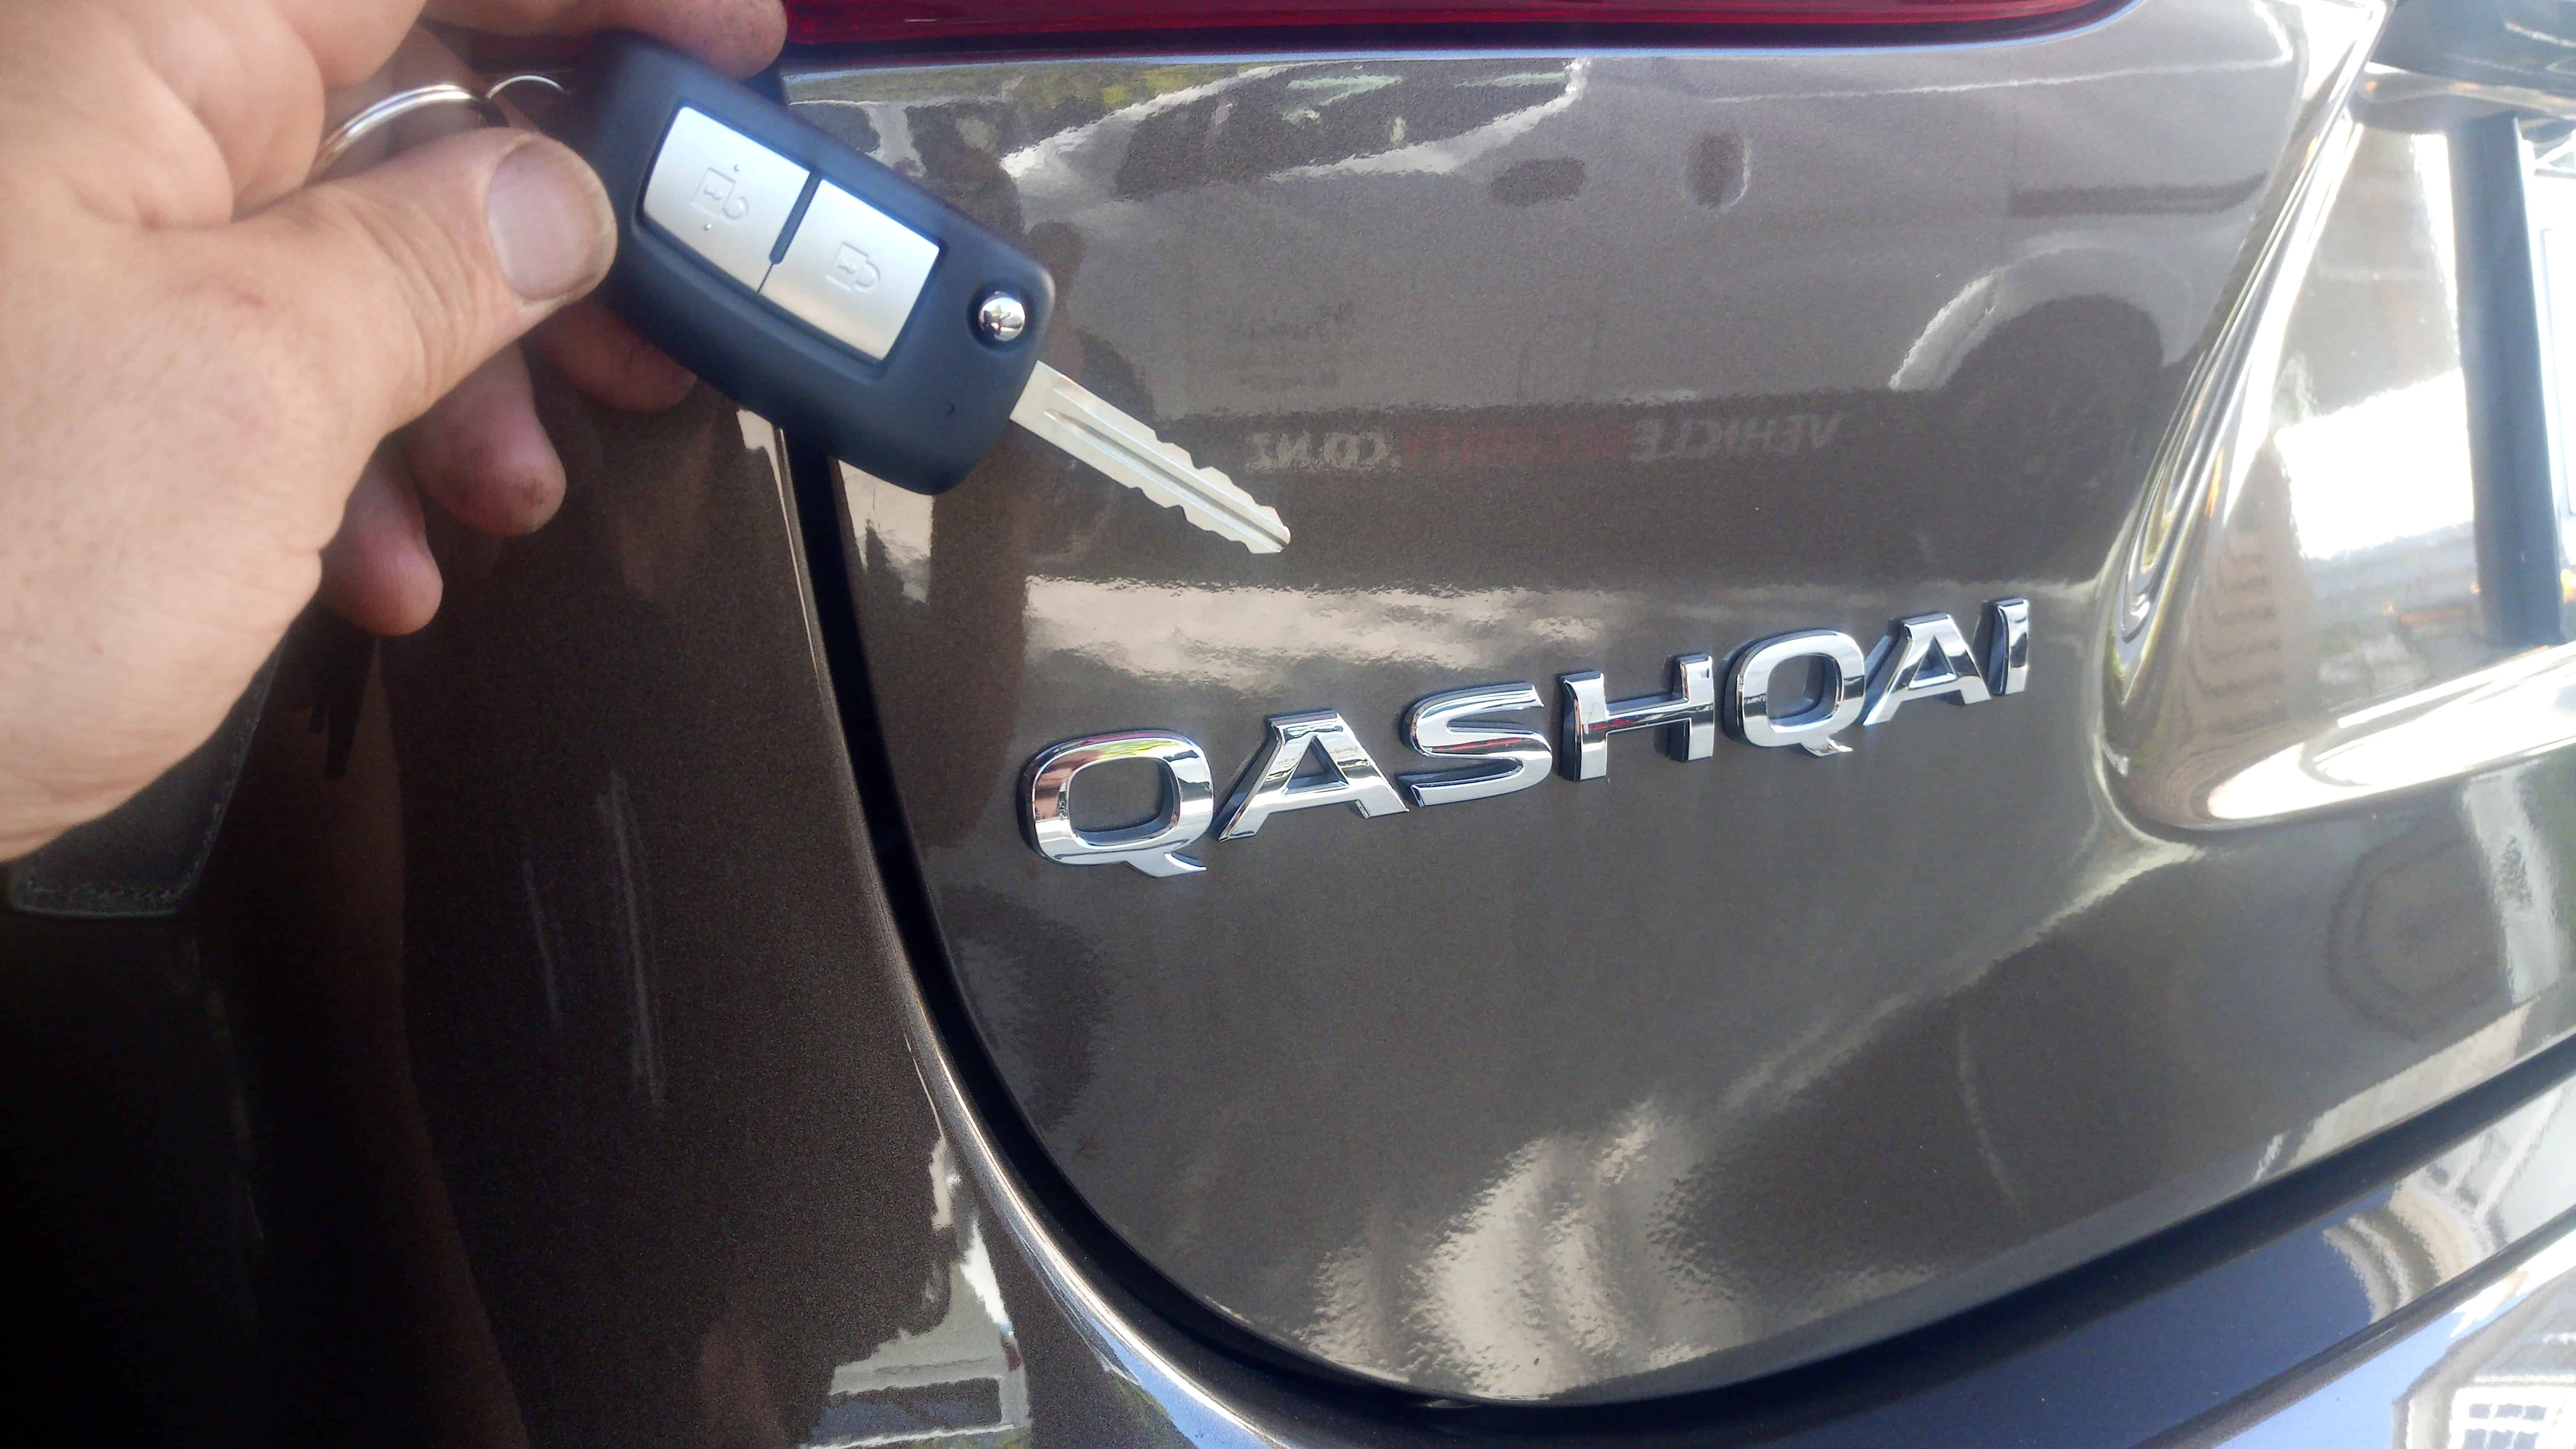 Nissan Qashqai Upgrade Alarm Obsessive Vehicle Security Mitsubishi Wiring Diagram Works With Factory Remote